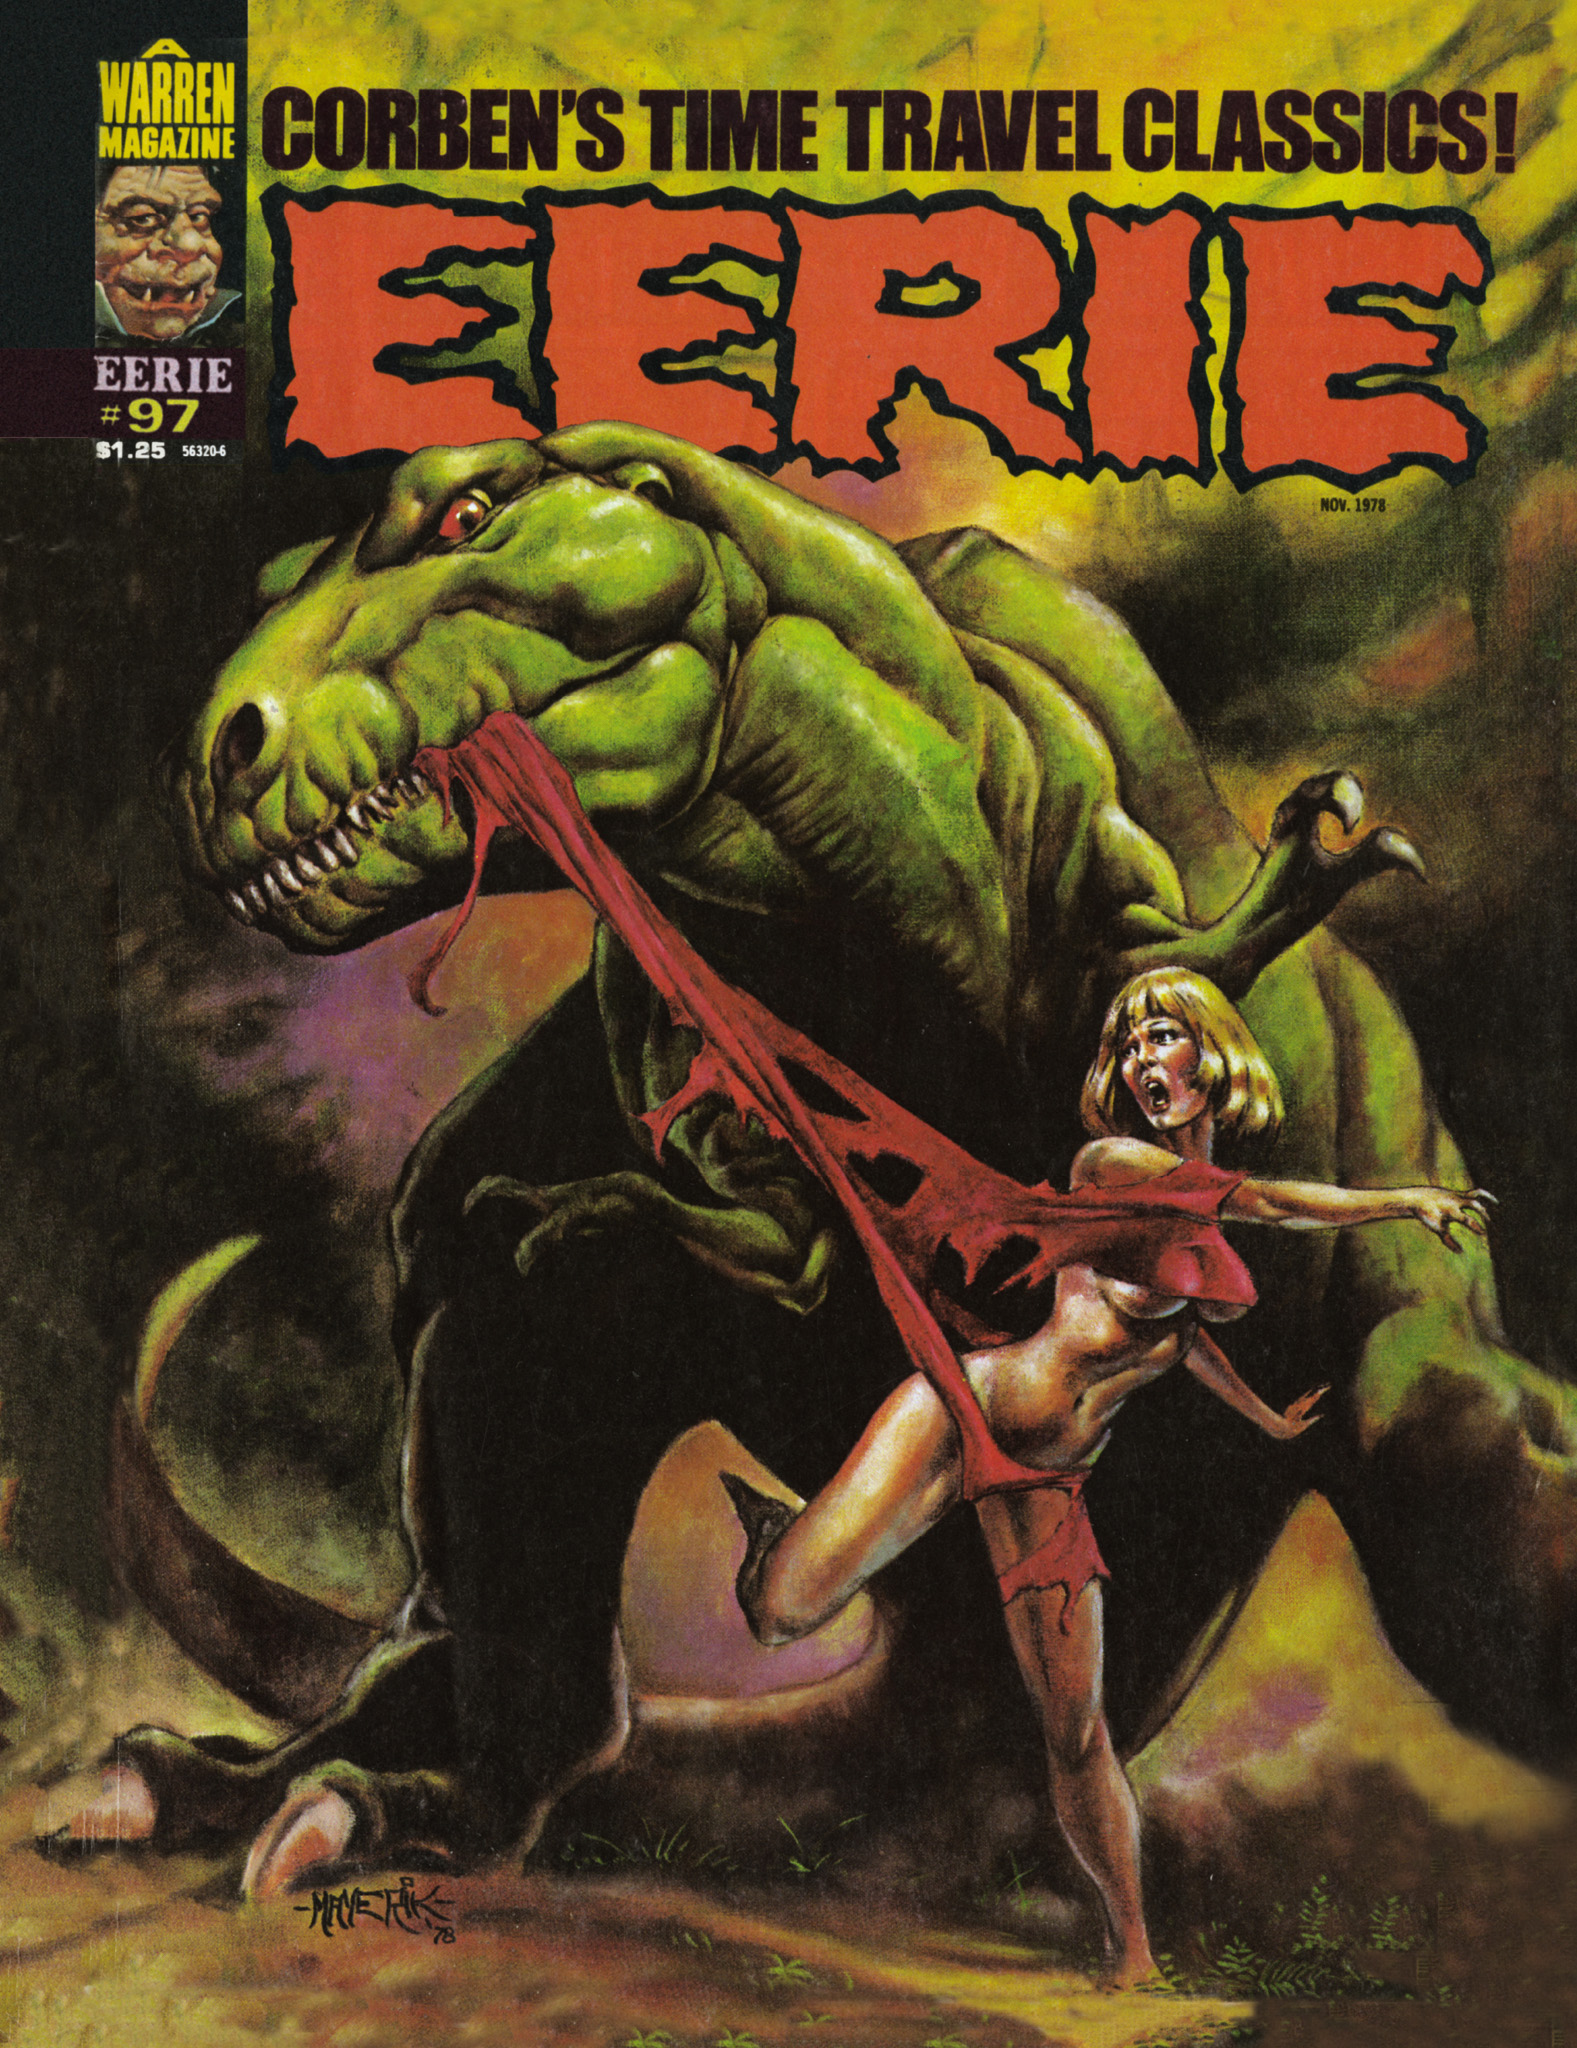 Read online Eerie Archives comic -  Issue # TPB 20 - 133